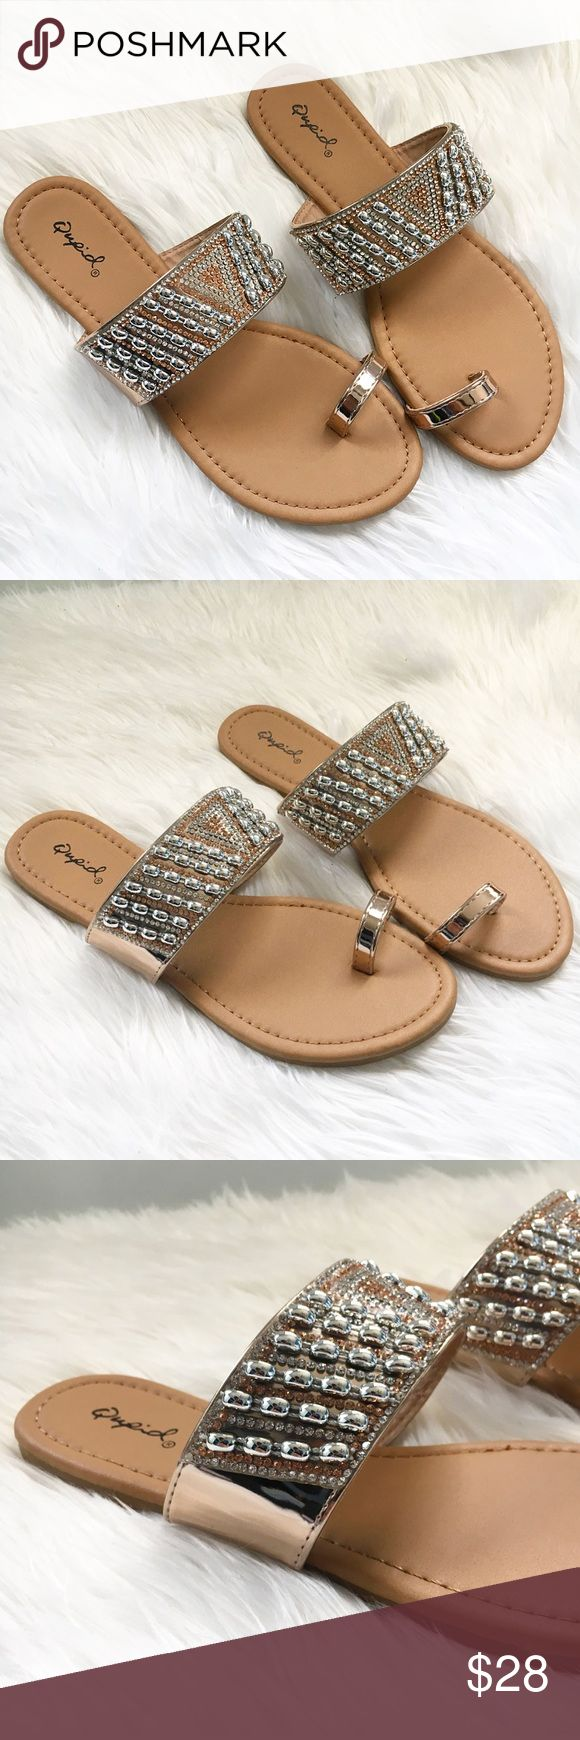 Gold toe rings for women - Rose Gold Toe Ring Sandals Beautiful Vacation Sandals Rose Gold Color With Rhinestones And Gem